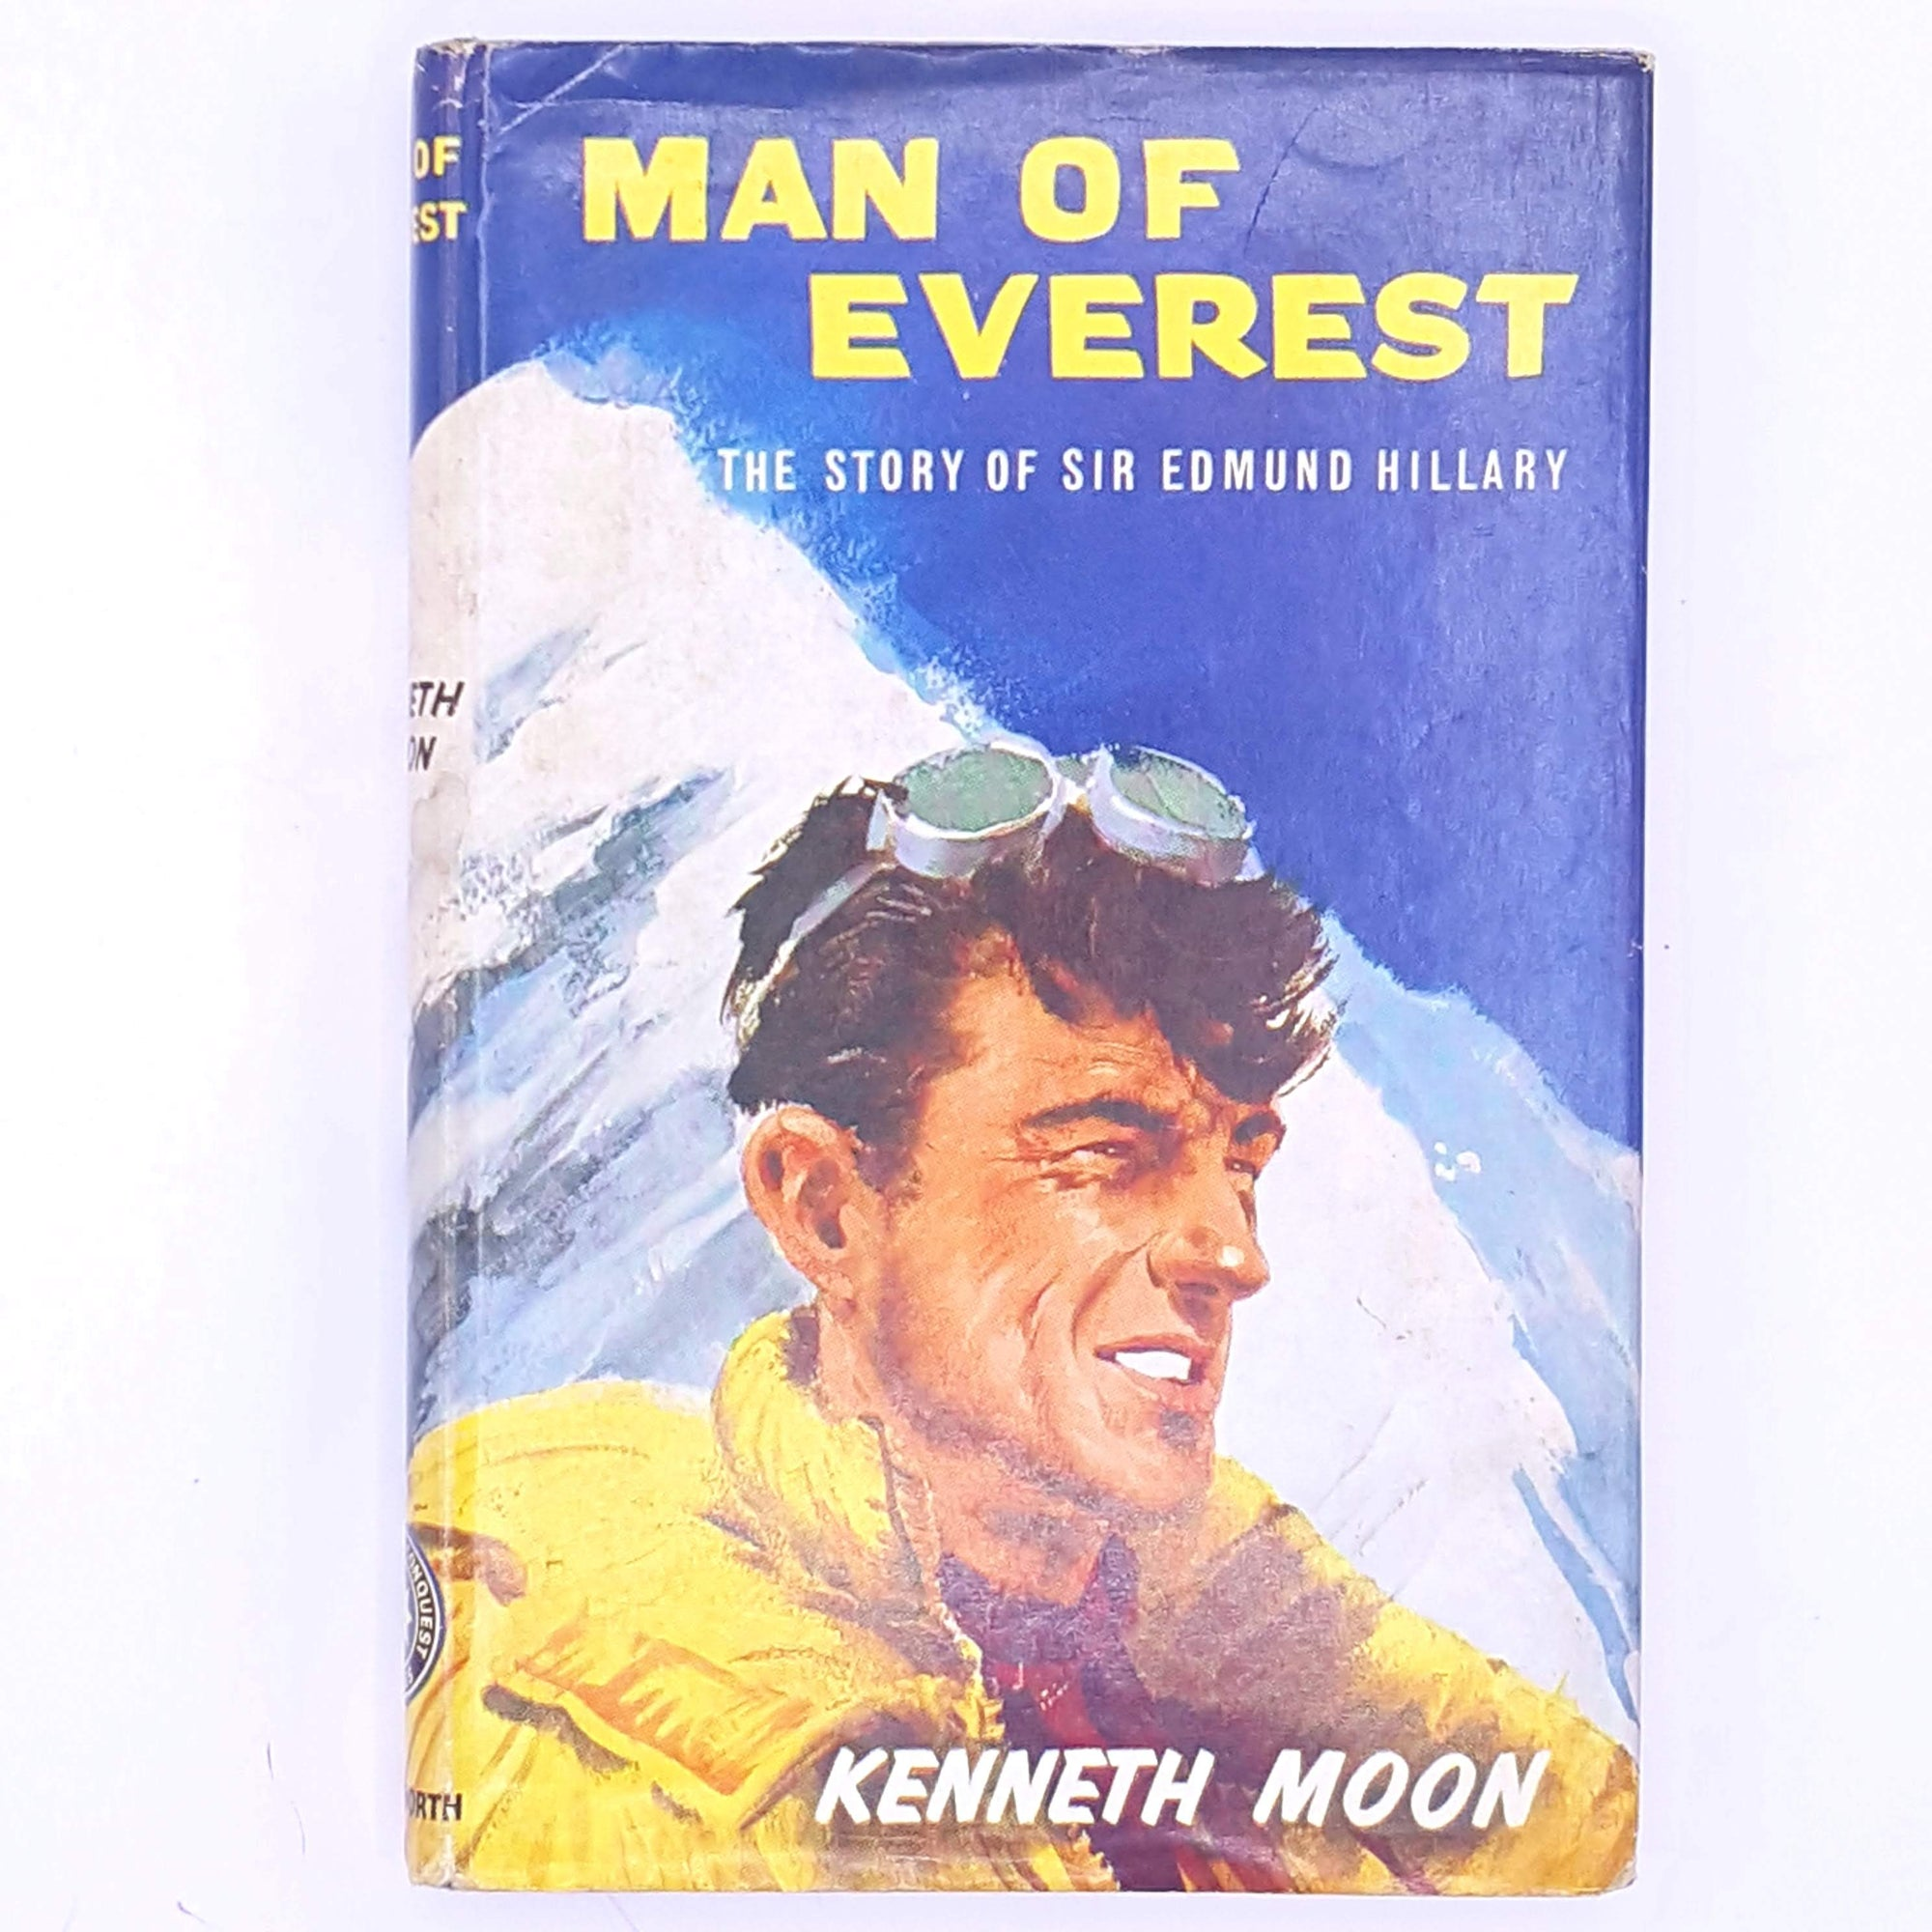 adventure- antique-sport-books-old-patterned-The-Story-Of-Sir-Edmund-Hillary-mountain-vintage-christmas-gifts-for-him-man-of-everest-country-house-library-thrift-decorative-classic-kenneth-moon-